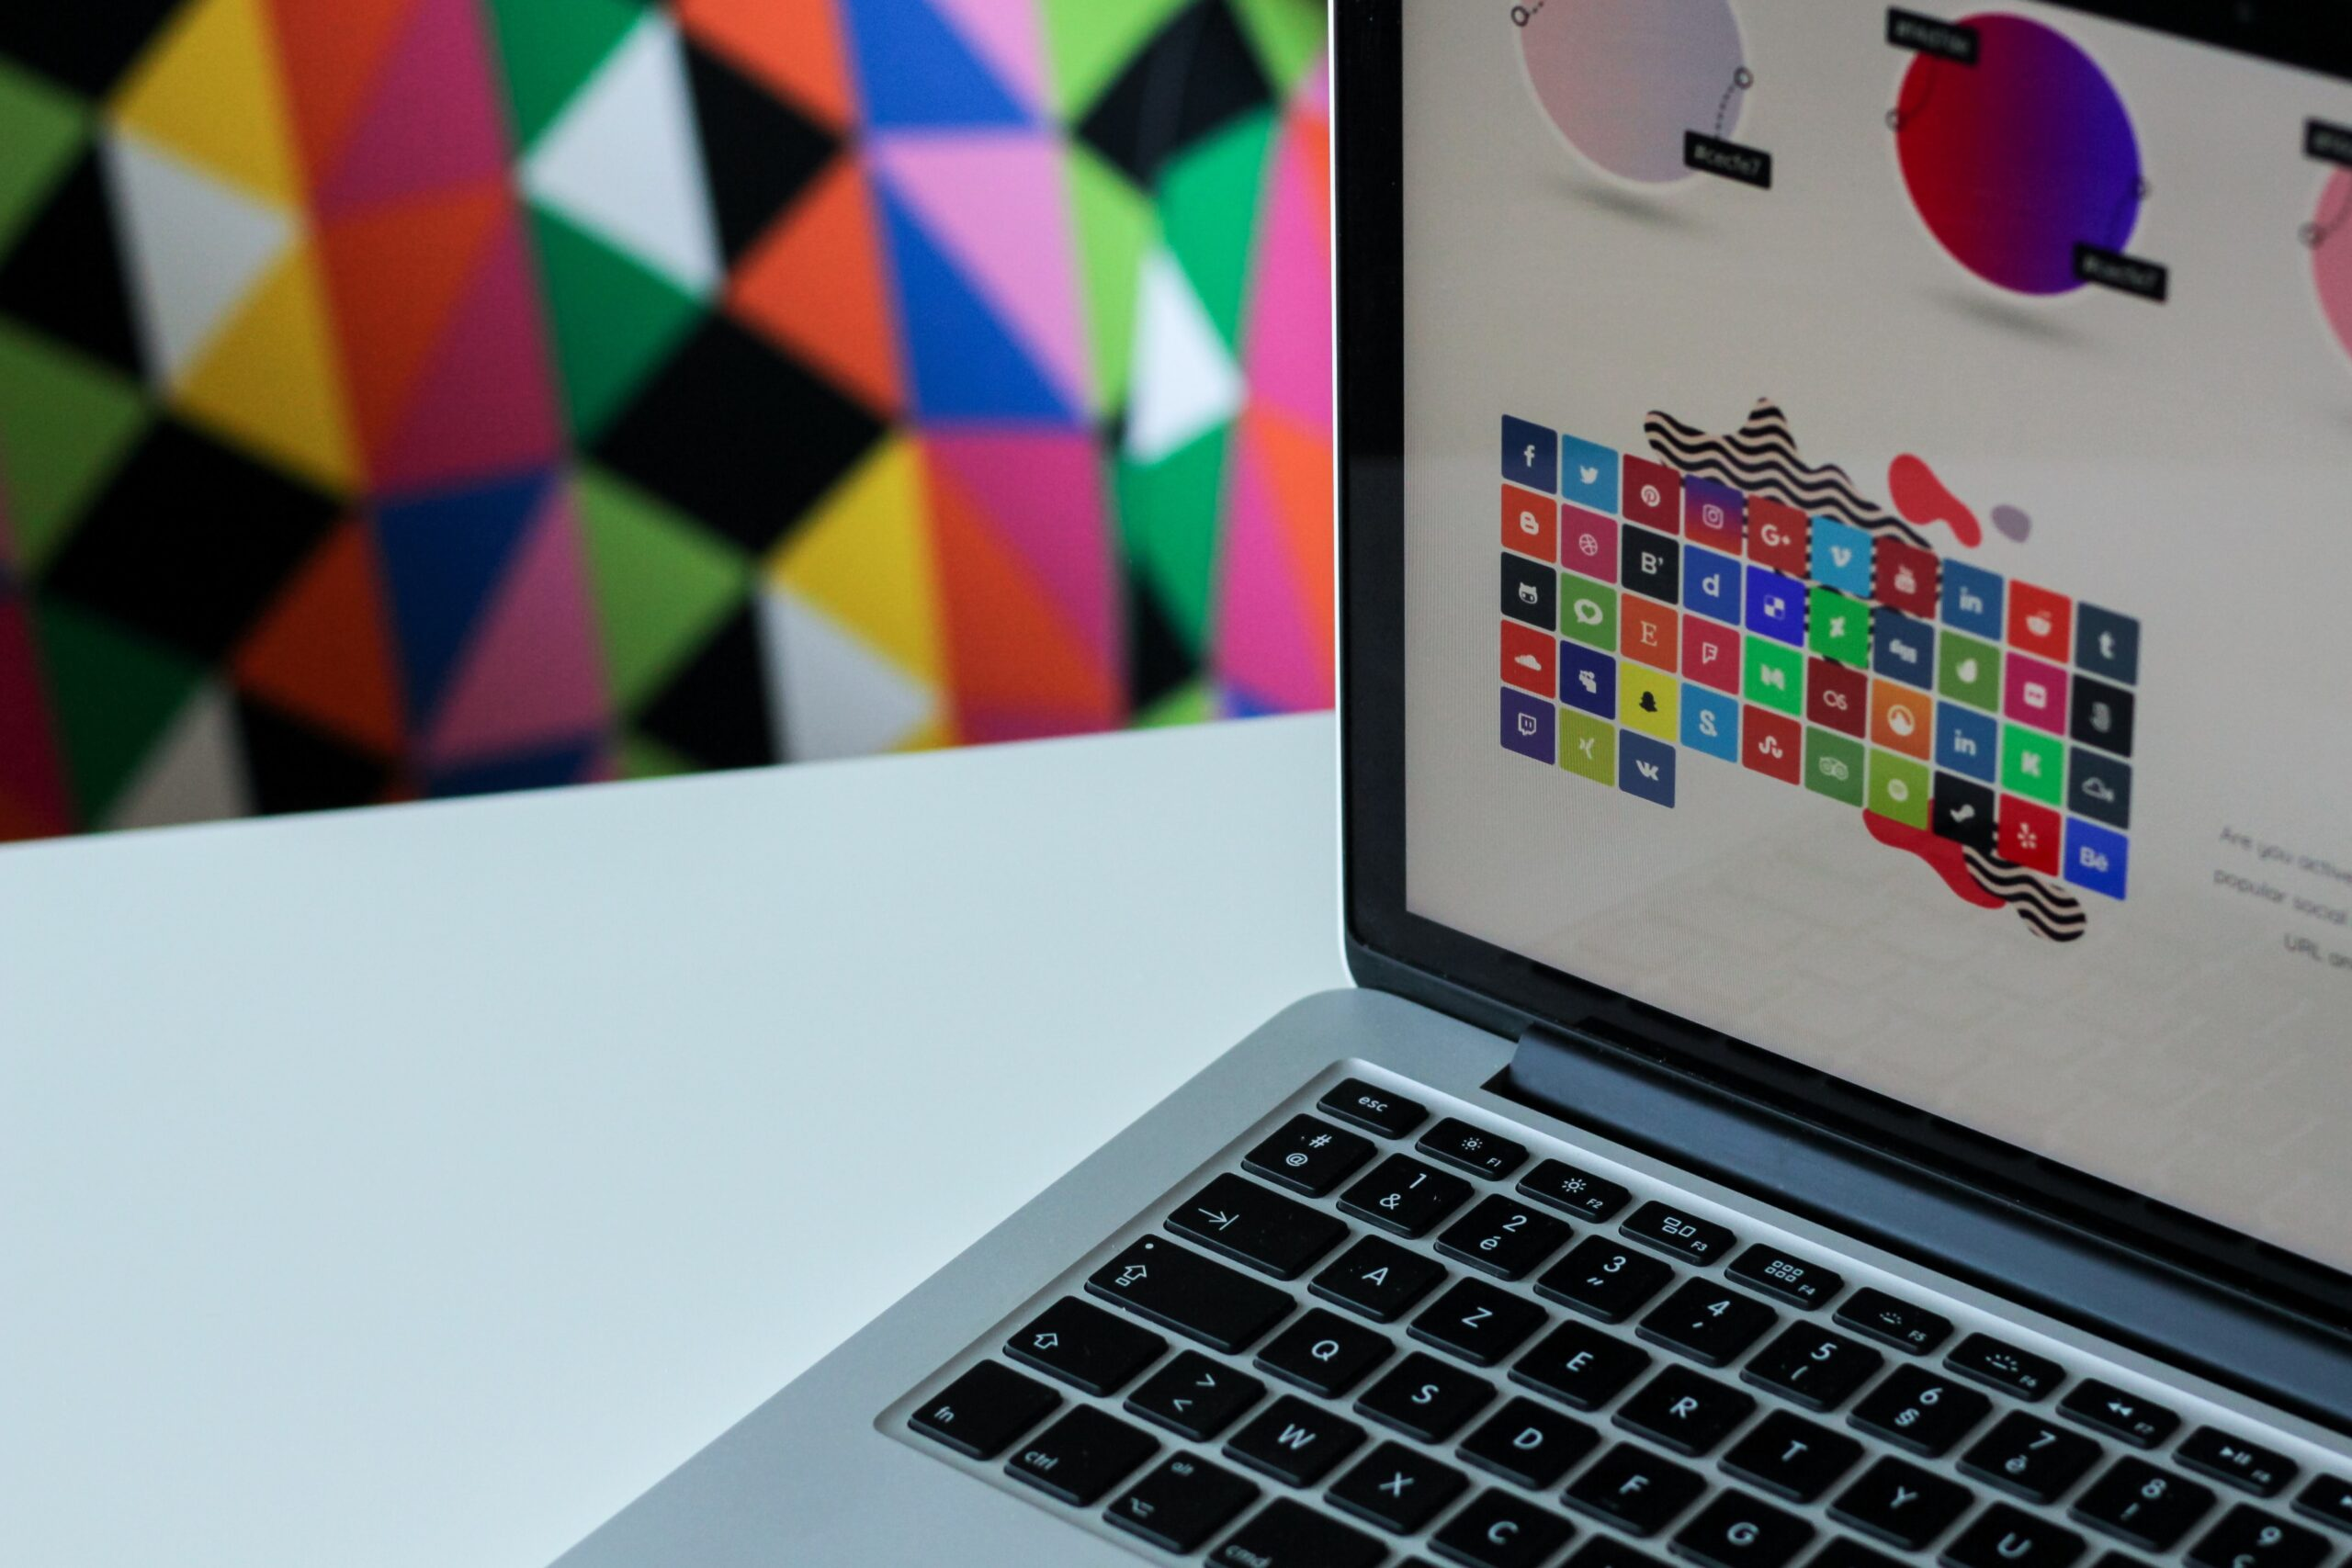 Laptop with a design on the screen and a colorful background.